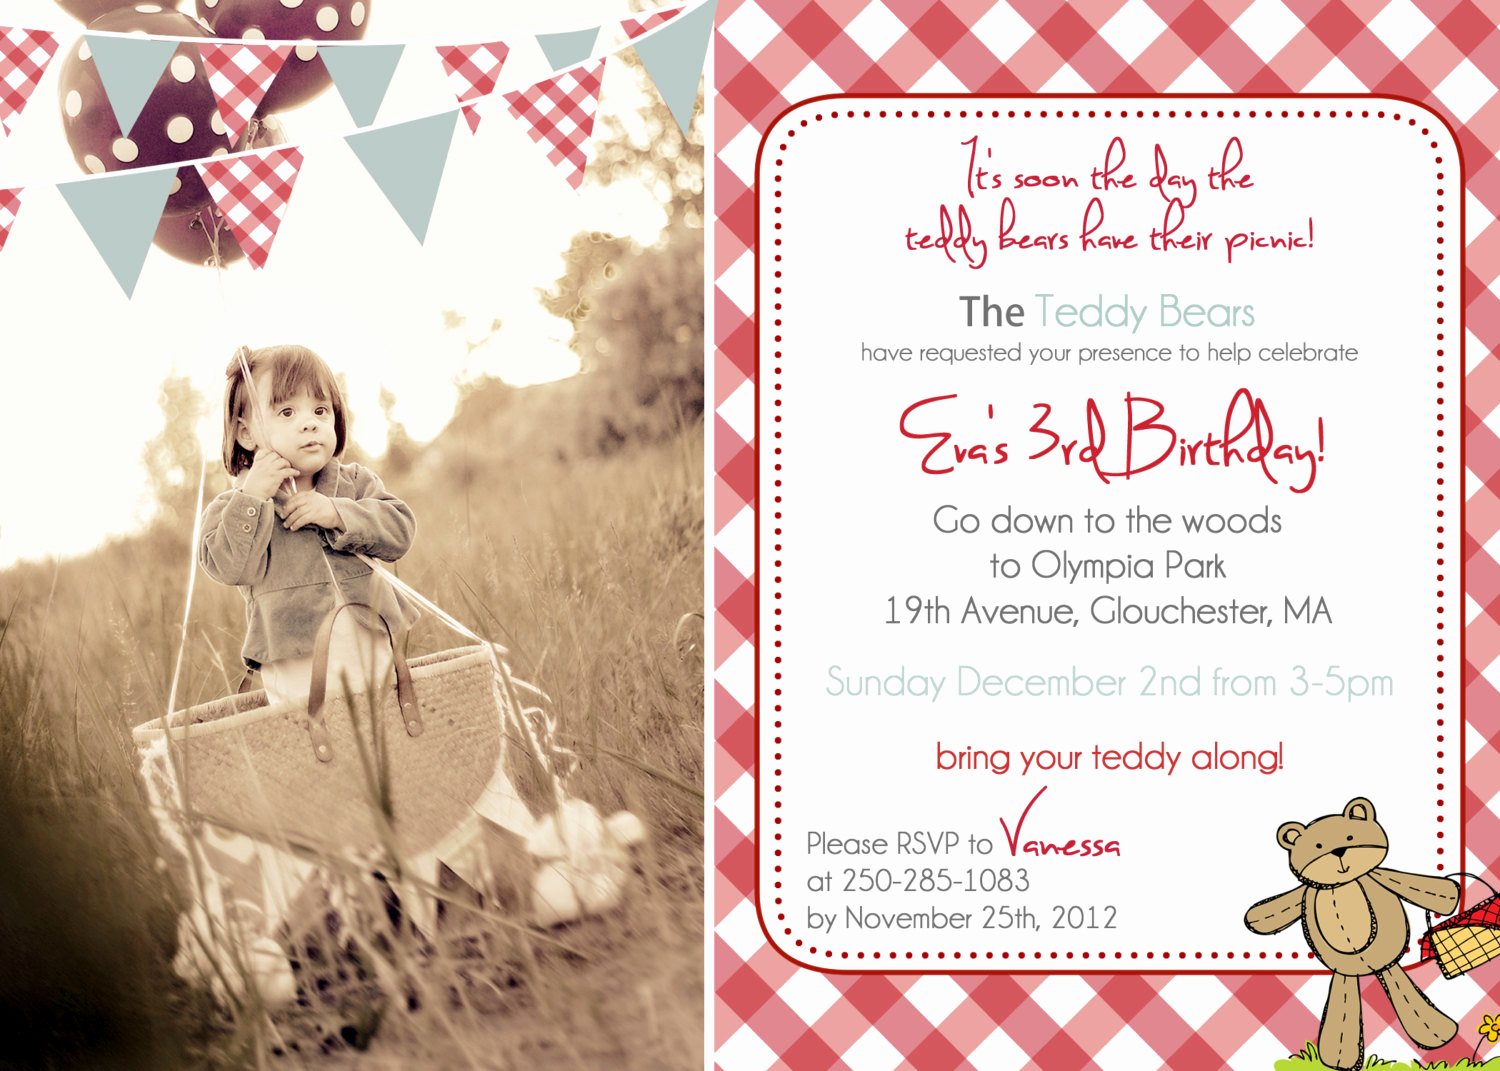 Teddy Bears Picnic Invitation Fresh Teddy Bear Picnic Birthday Invitation You Print by